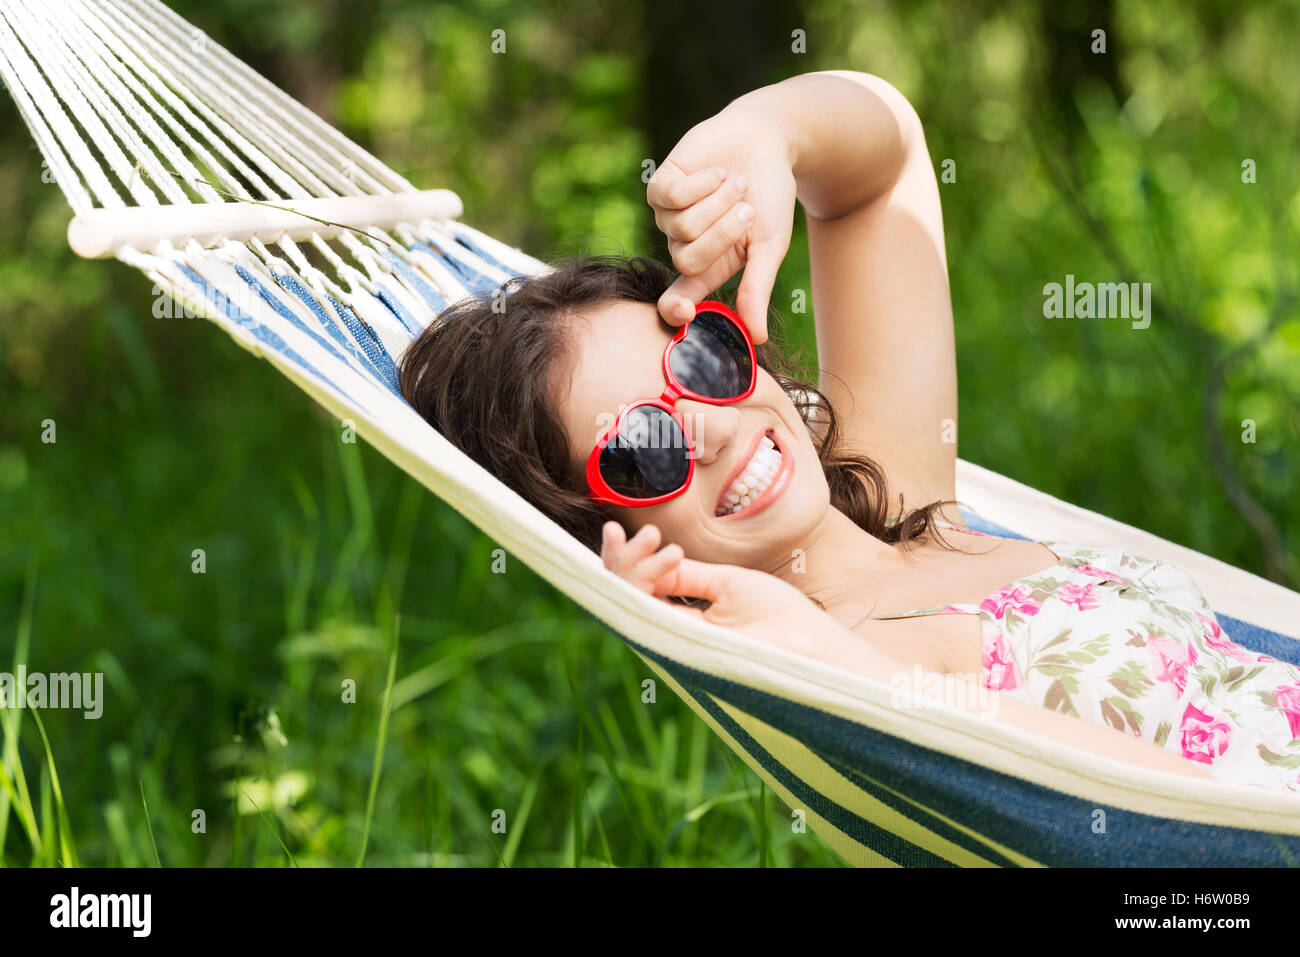 young woman lying in a hammock - Stock Image